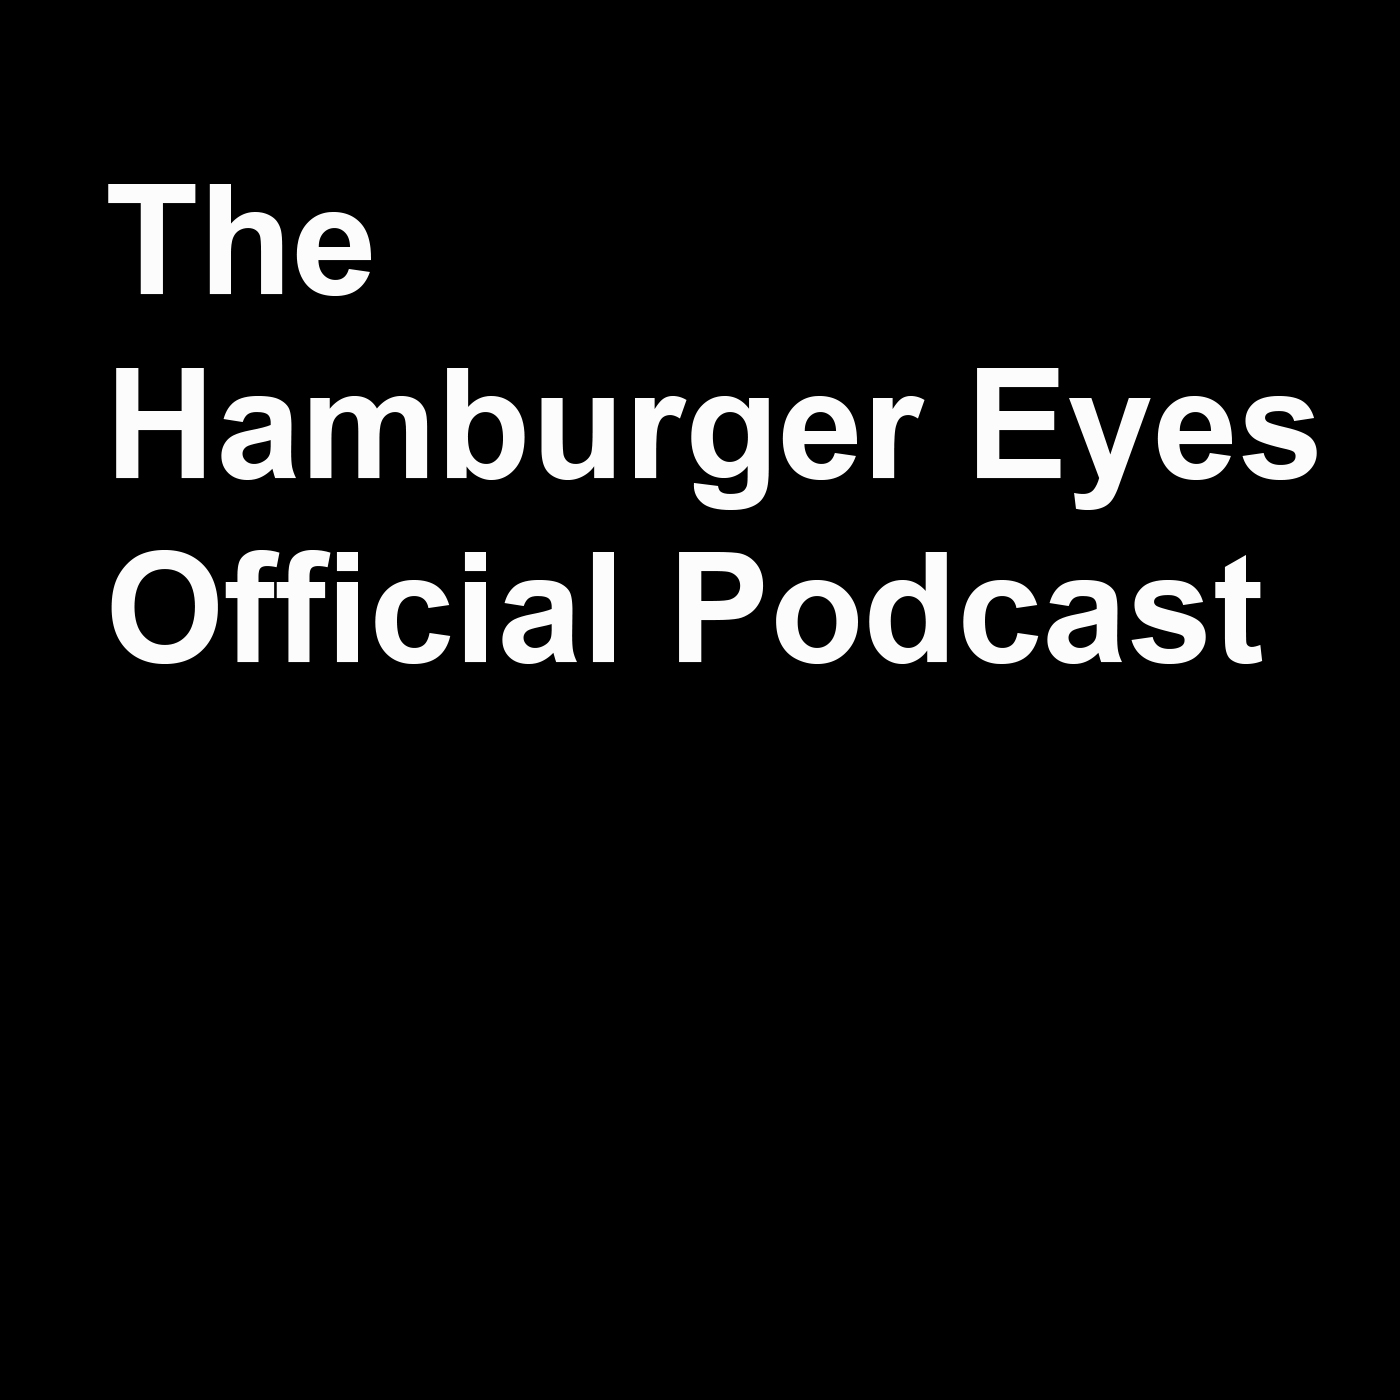 THE HAMBURGER EYES PODCAST